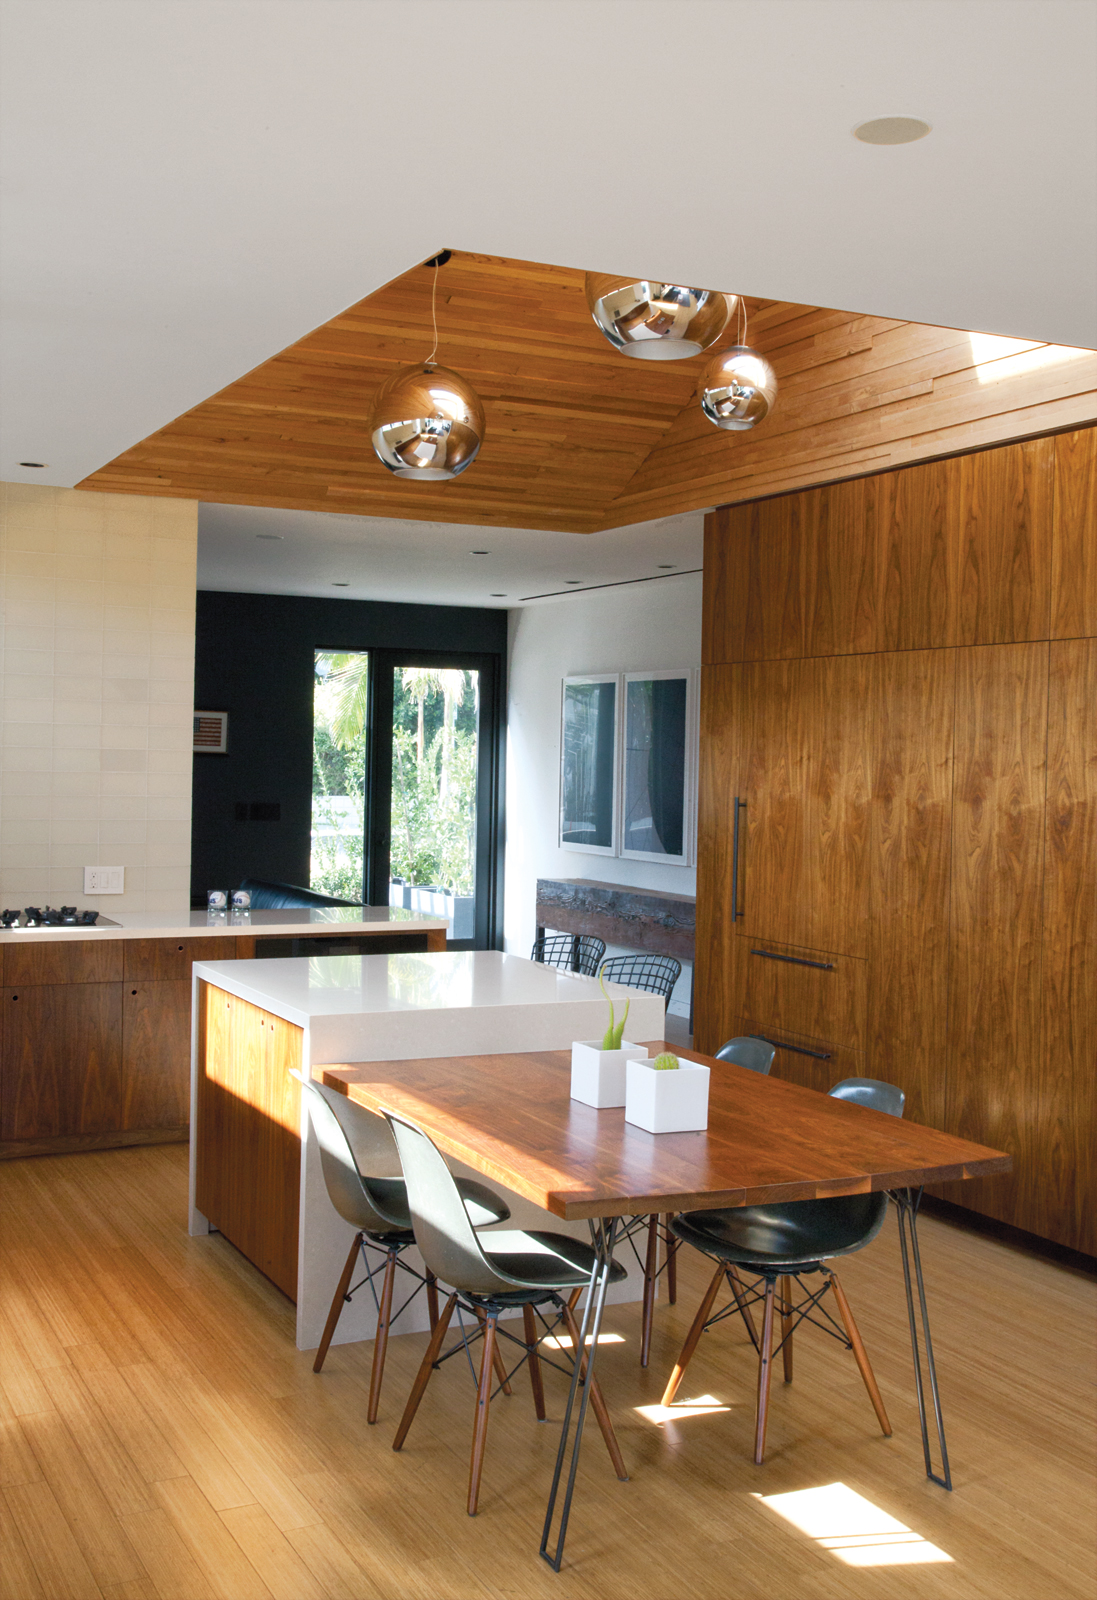 Custom walnut dining furniture in modern kitchen